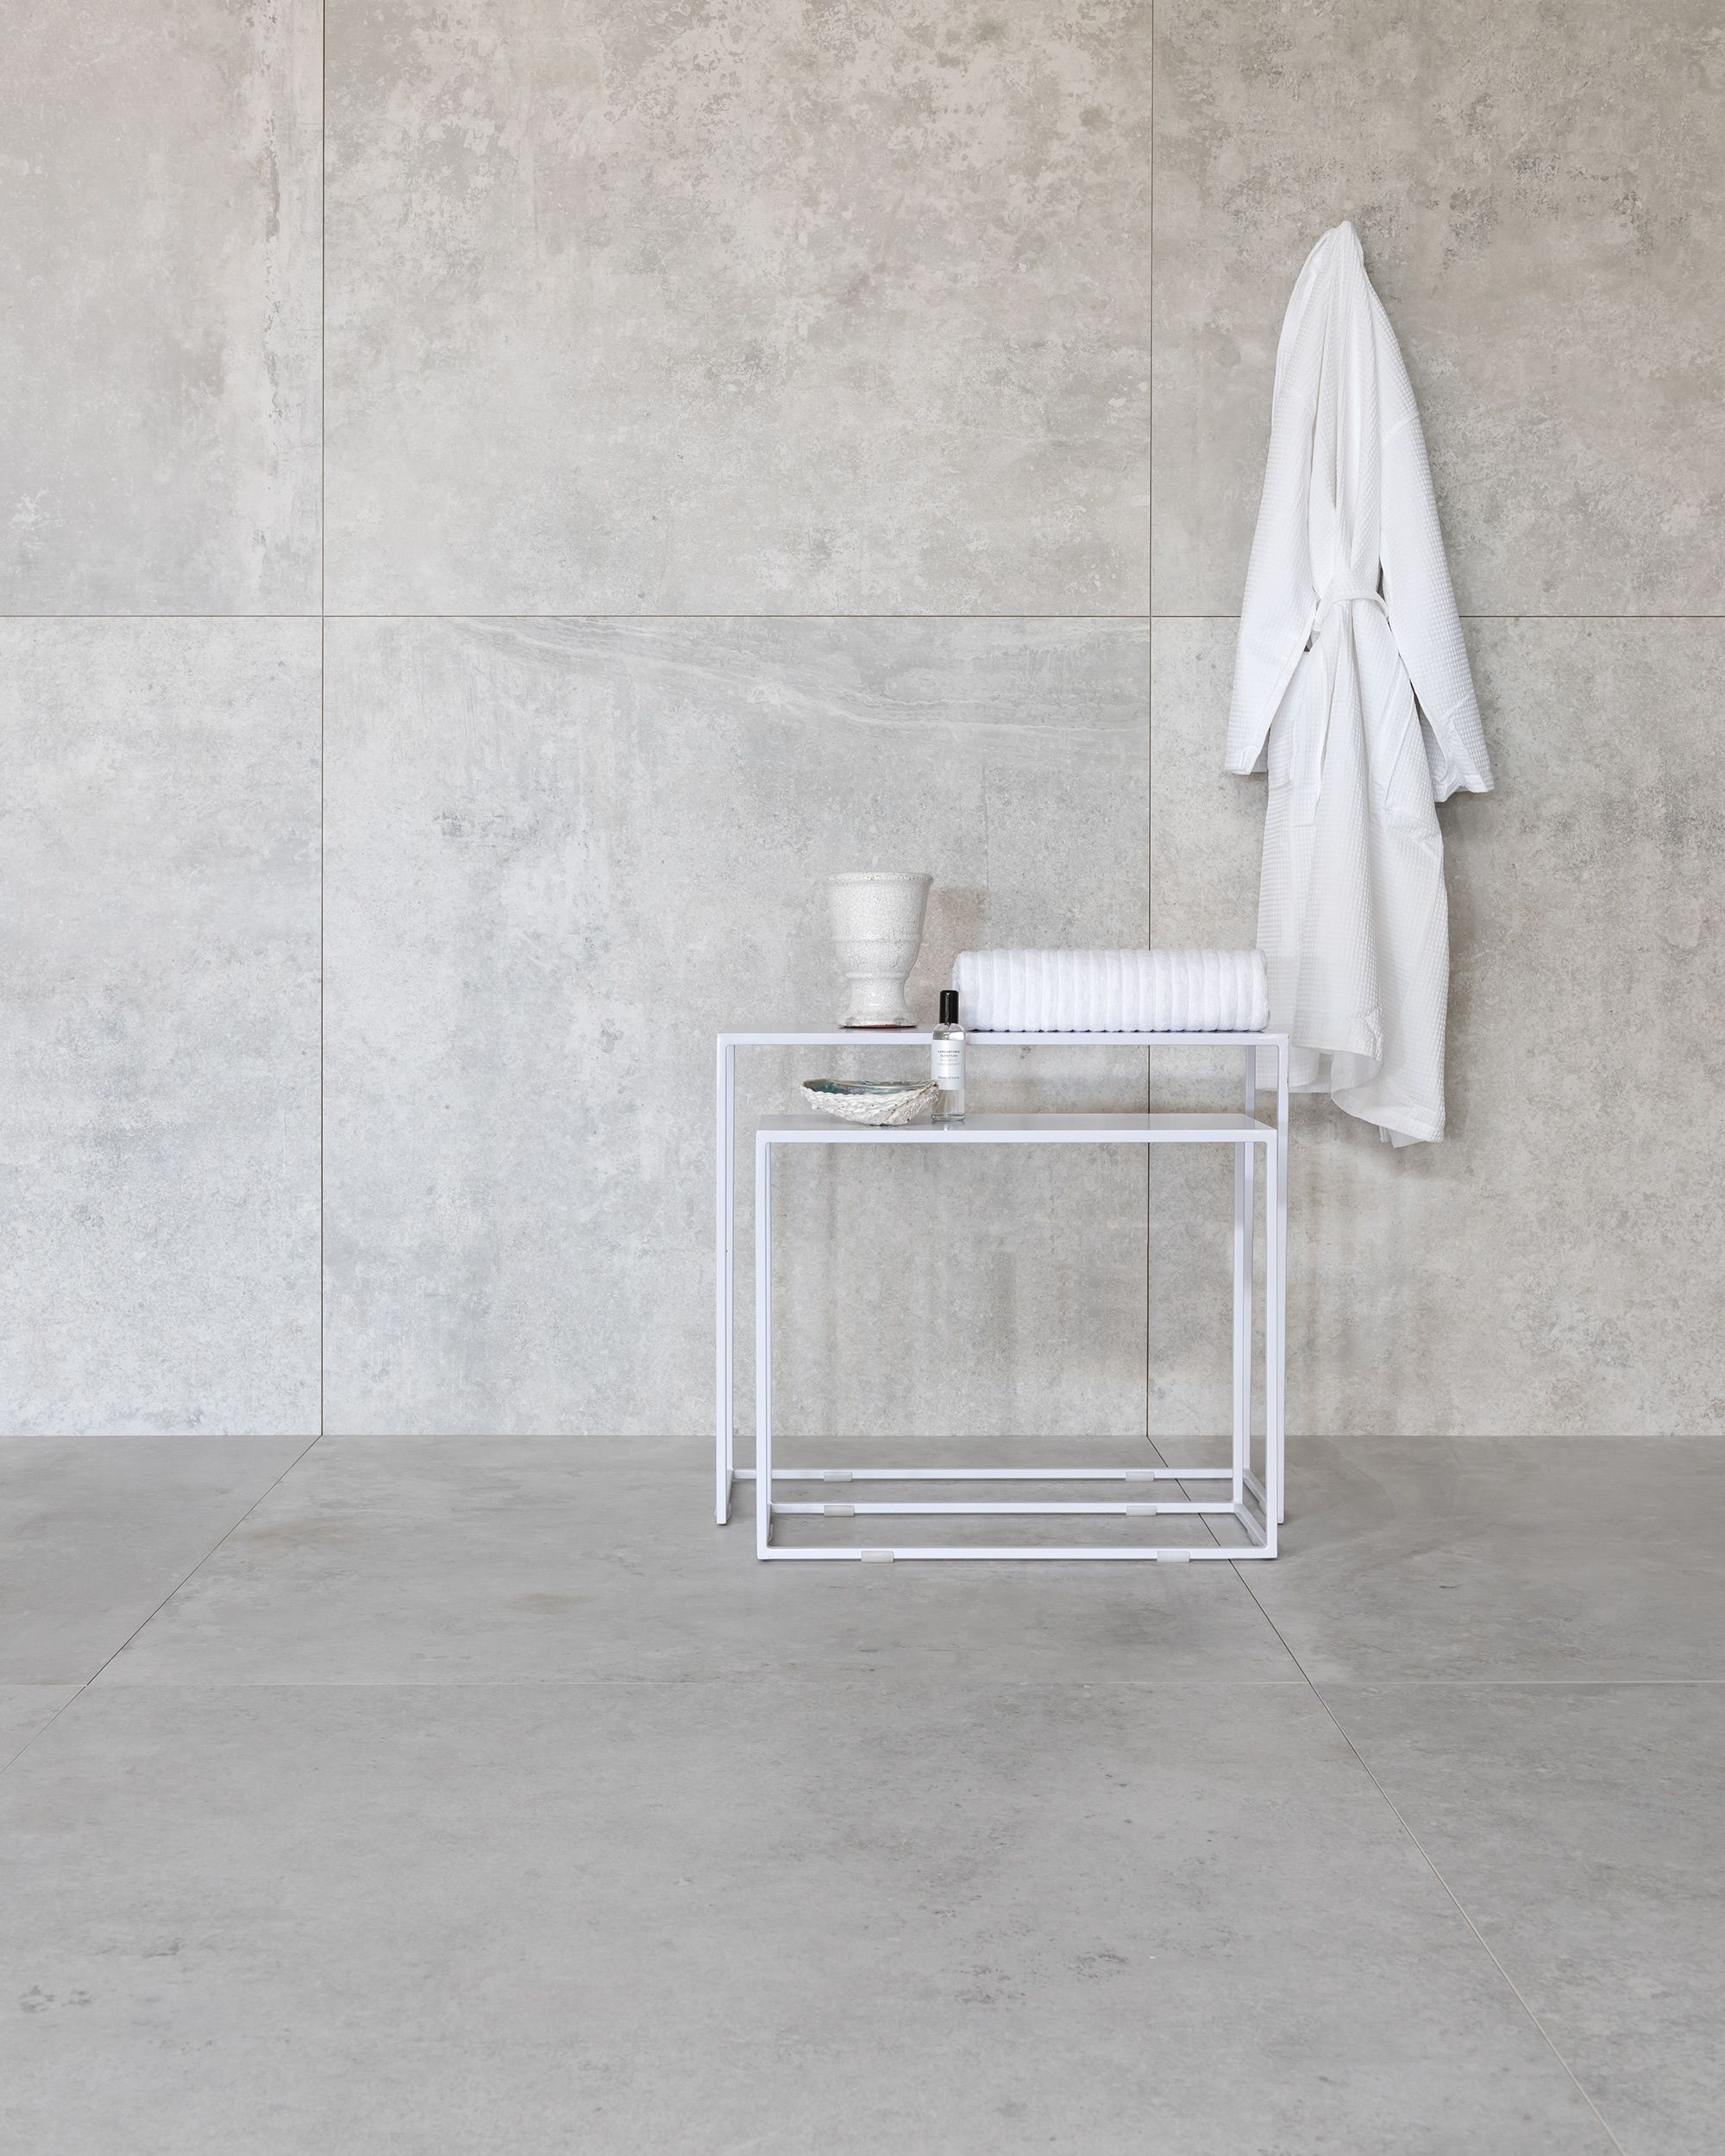 giant-tile-white-piet-boon.jpg (2000×2500) | bathroom... byJessie ...